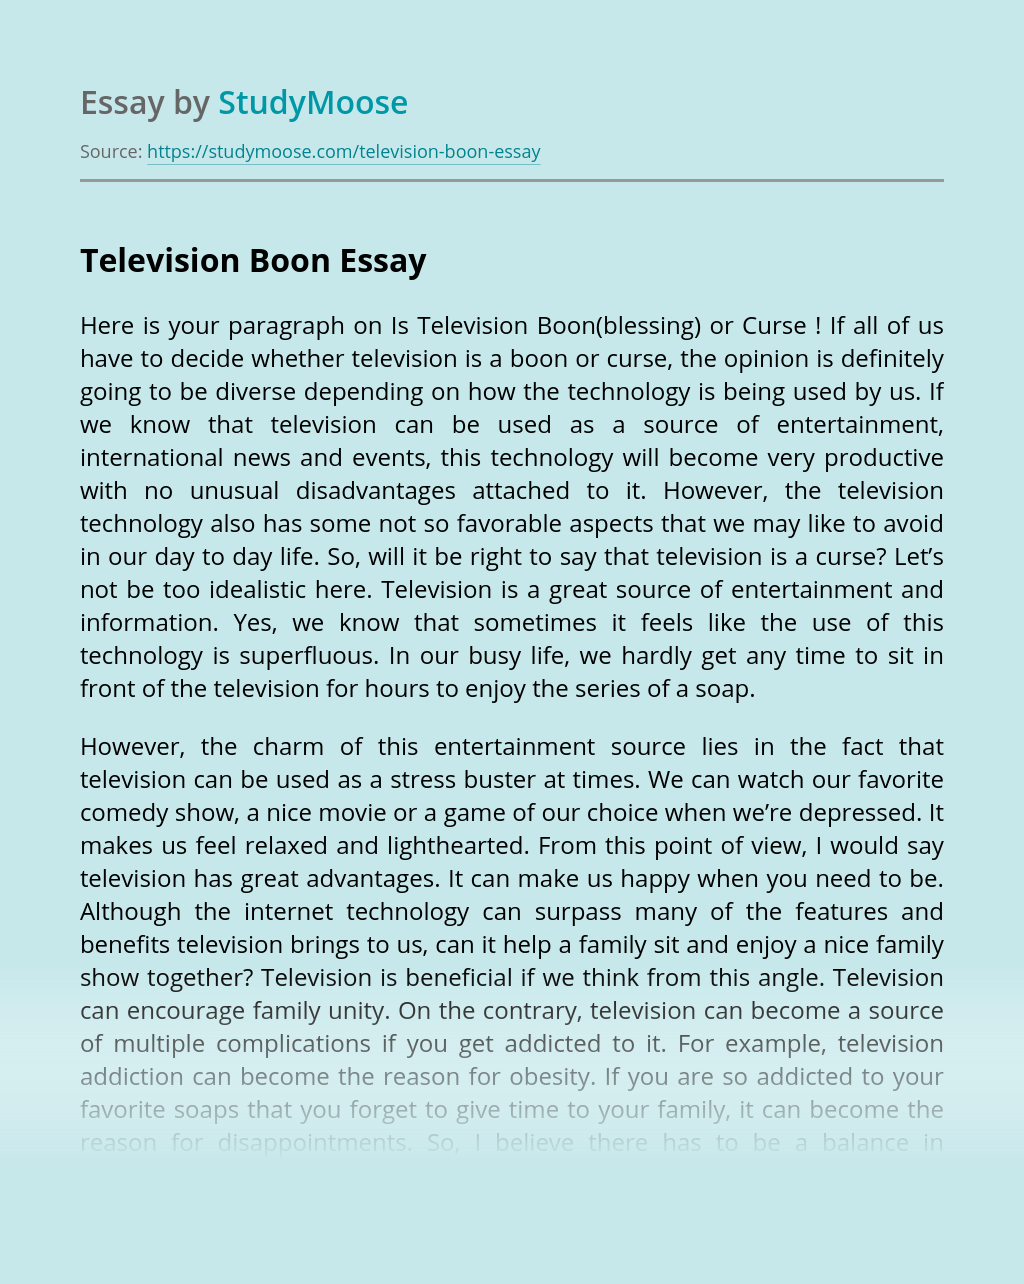 Television Boon